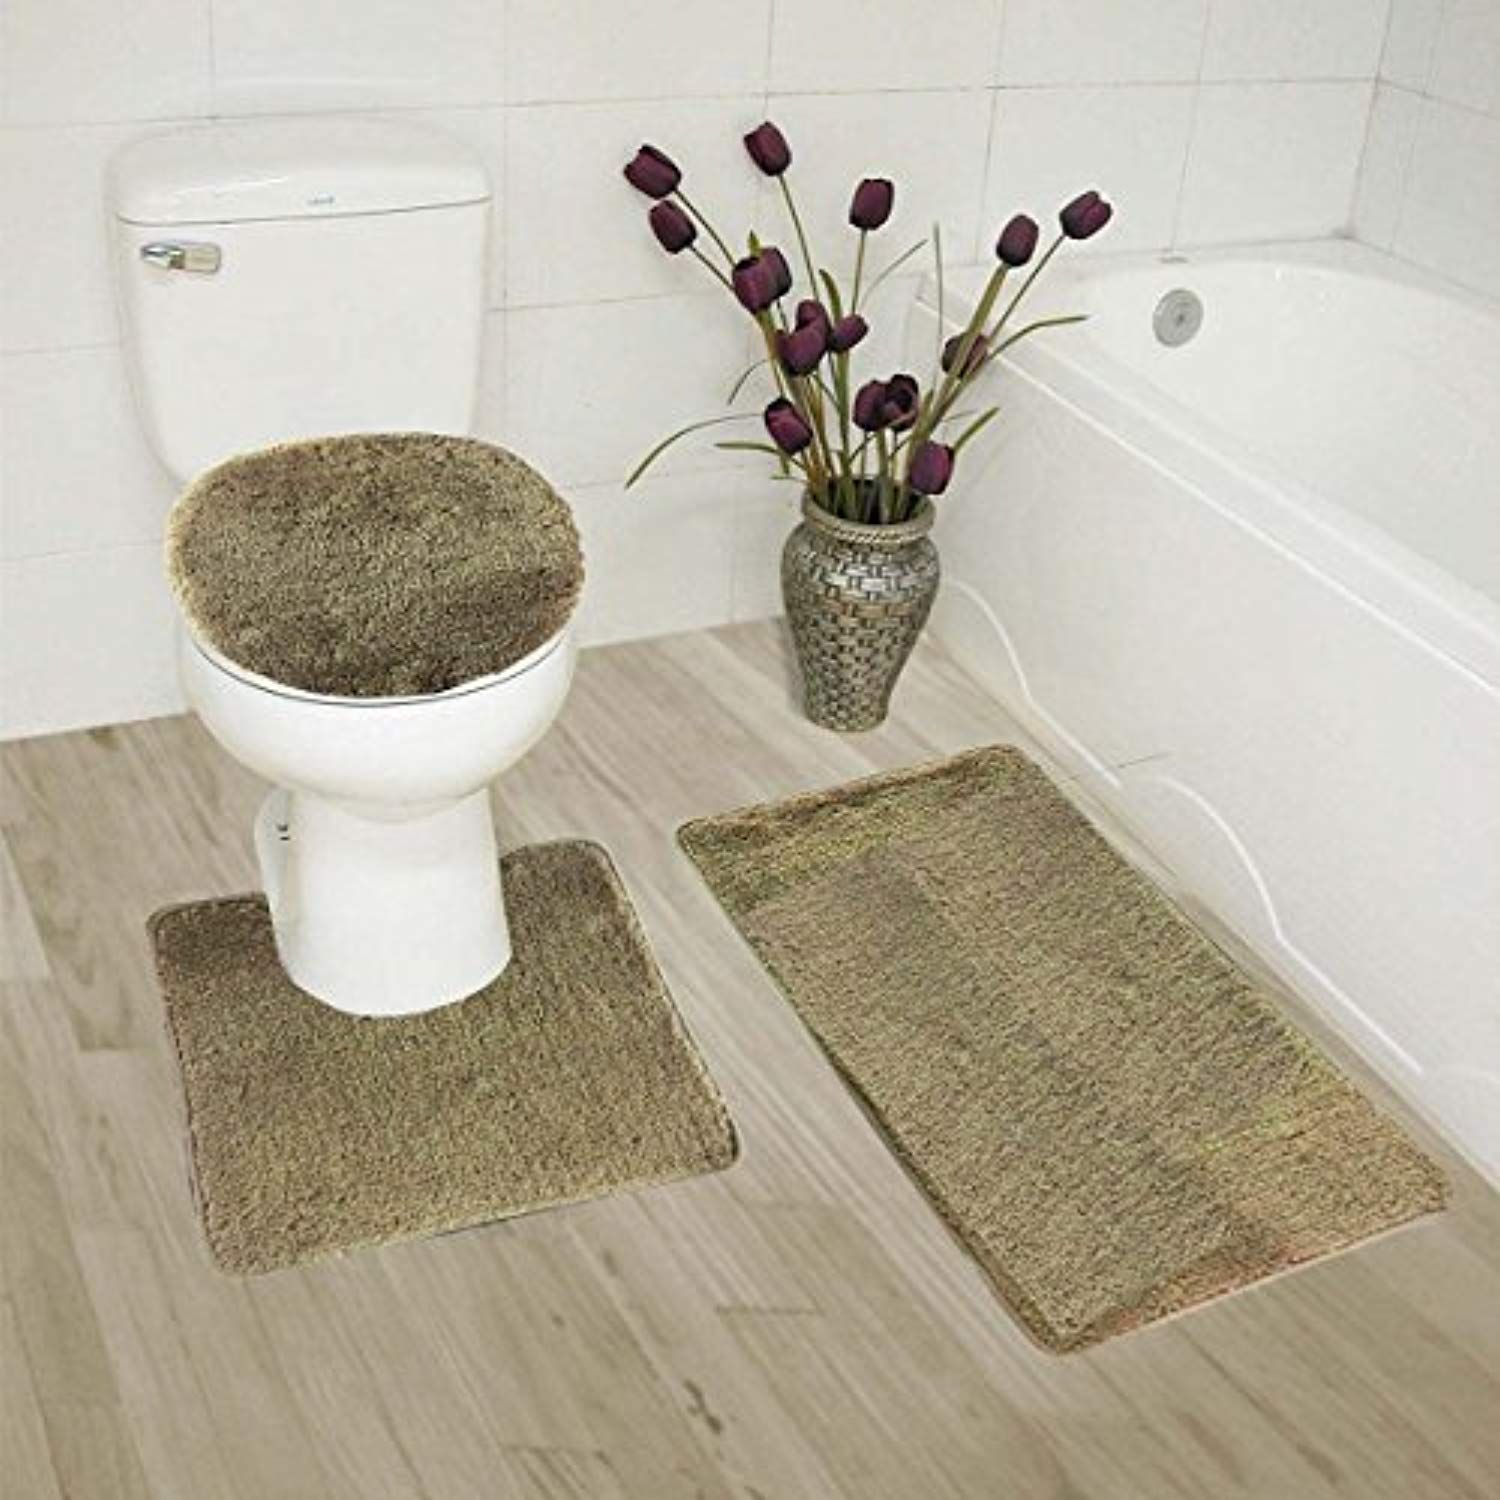 Mk Home Collection 3 Piece Bathroom Rug Set Bath Rug Contour Mat And Lid Cover Non Slip With Rubber Backing Soli Bath Rugs Sets Memory Foam Bath Rugs Rug Sets